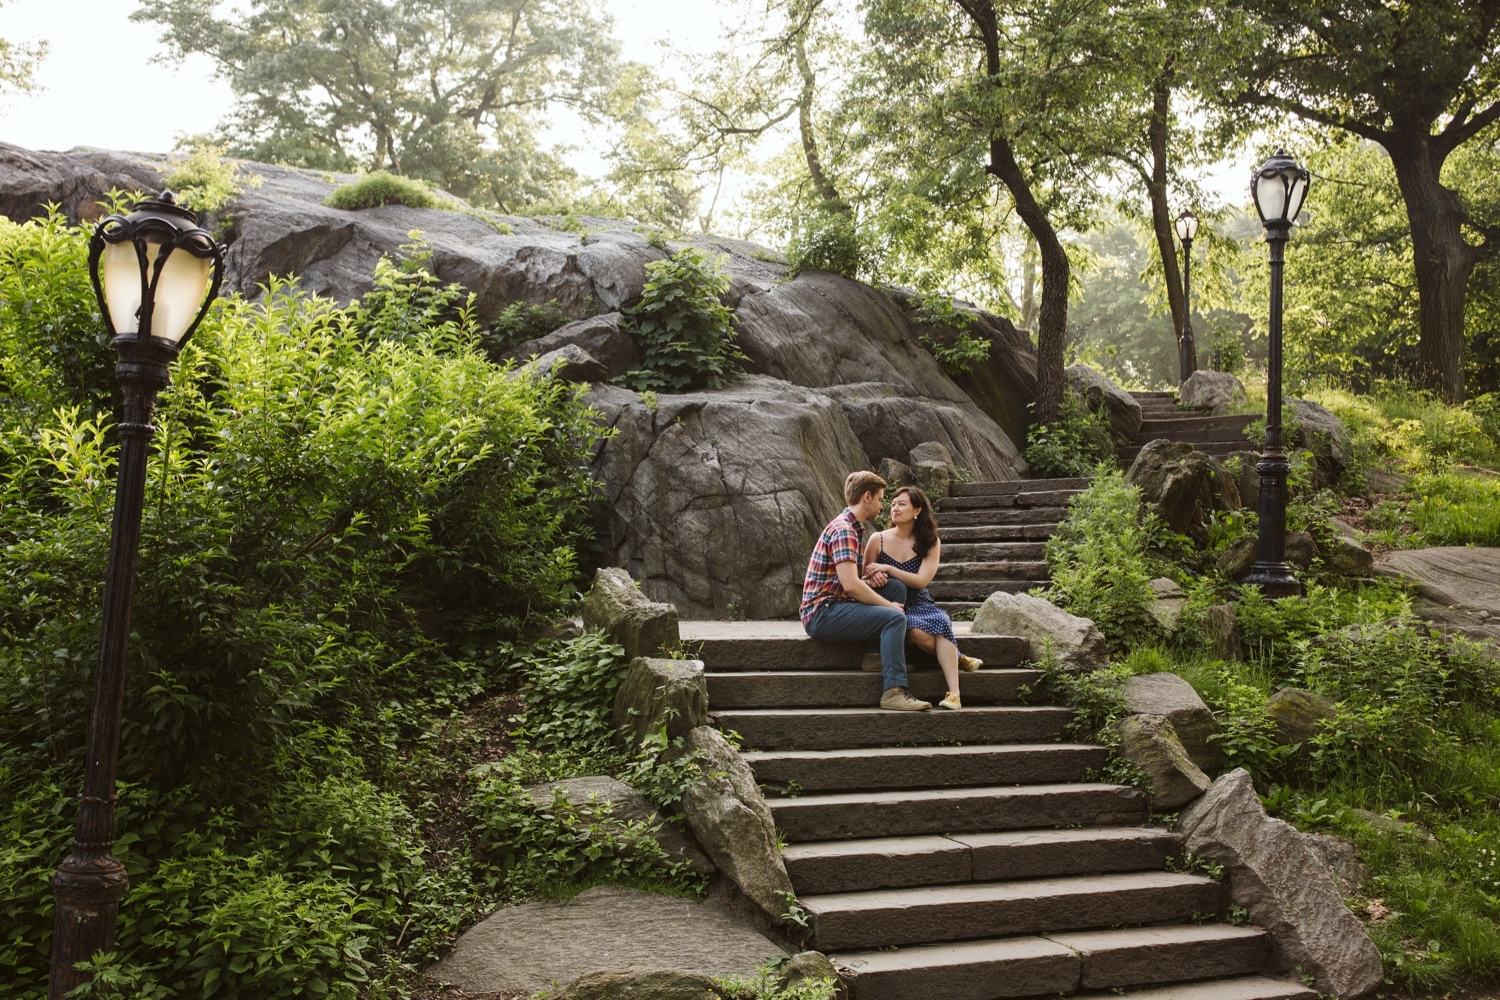 the engaged couple sitting on the top of a staircase on the rocky area.